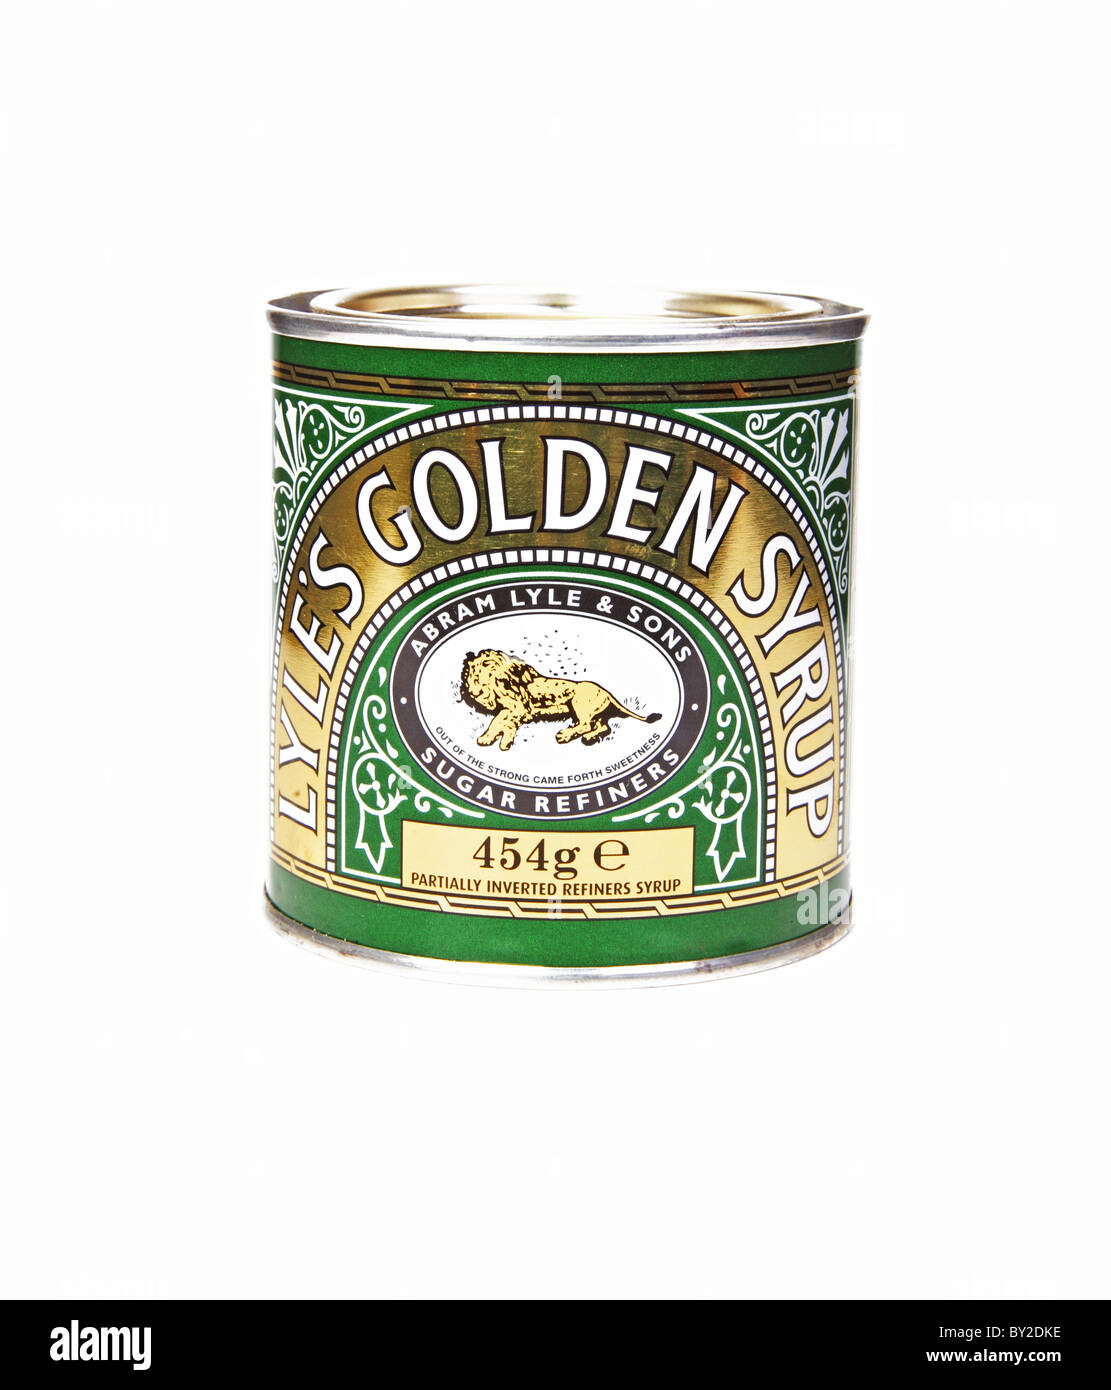 Tin of Lyle's Golden Syrup - Stock Image